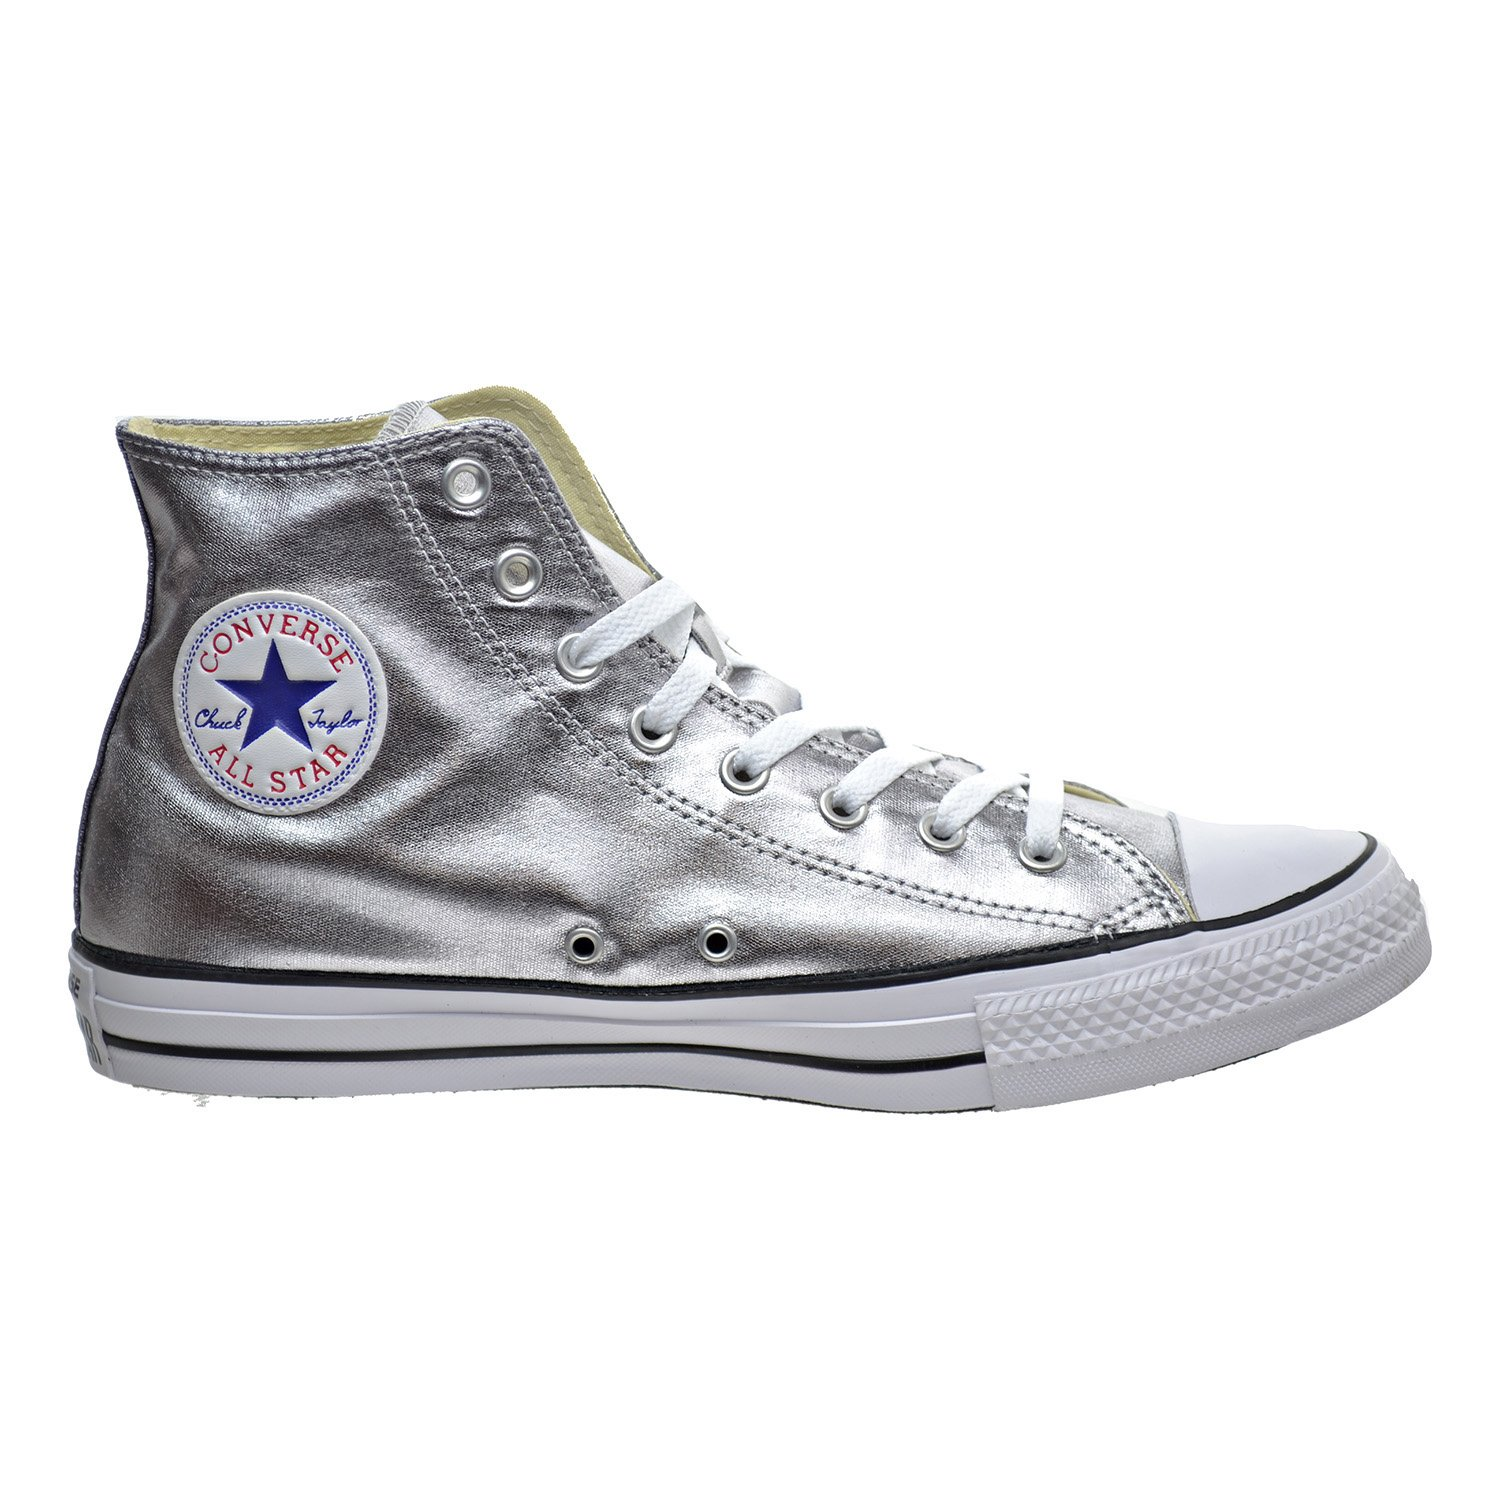 e8050533de5c81 Converse AS Hi Can charcoal 1J793 Unisex-Erwachsene Sneaker 7 B(M) US Women    5 D(M) US Men